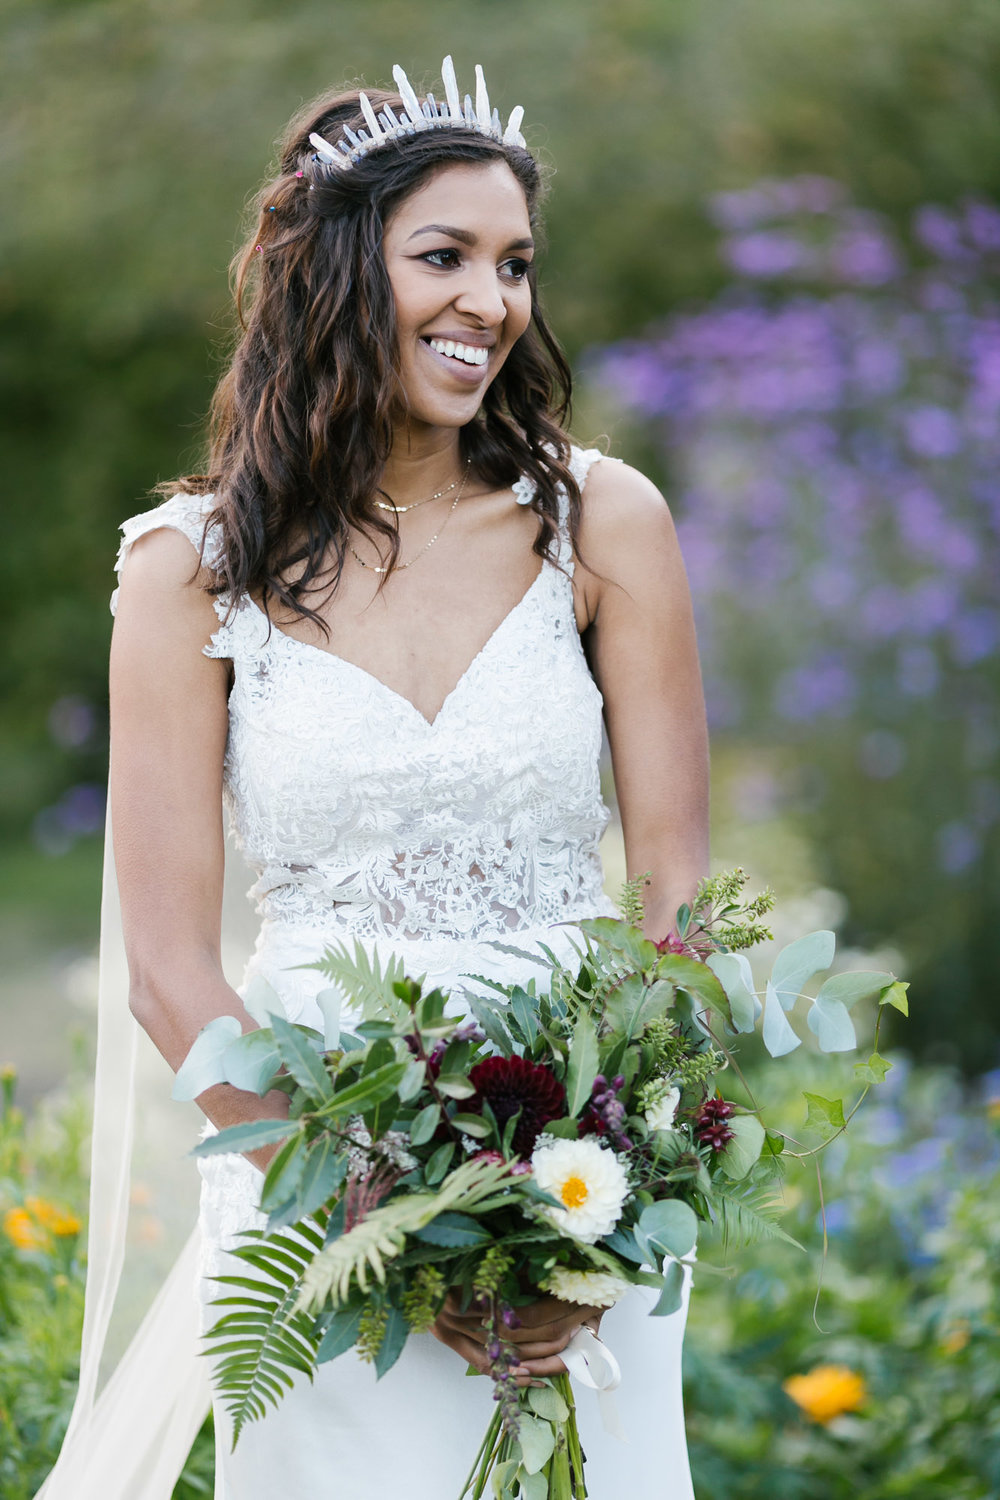 Bride in crystal crown and custom lace dress smiles on her wedding day